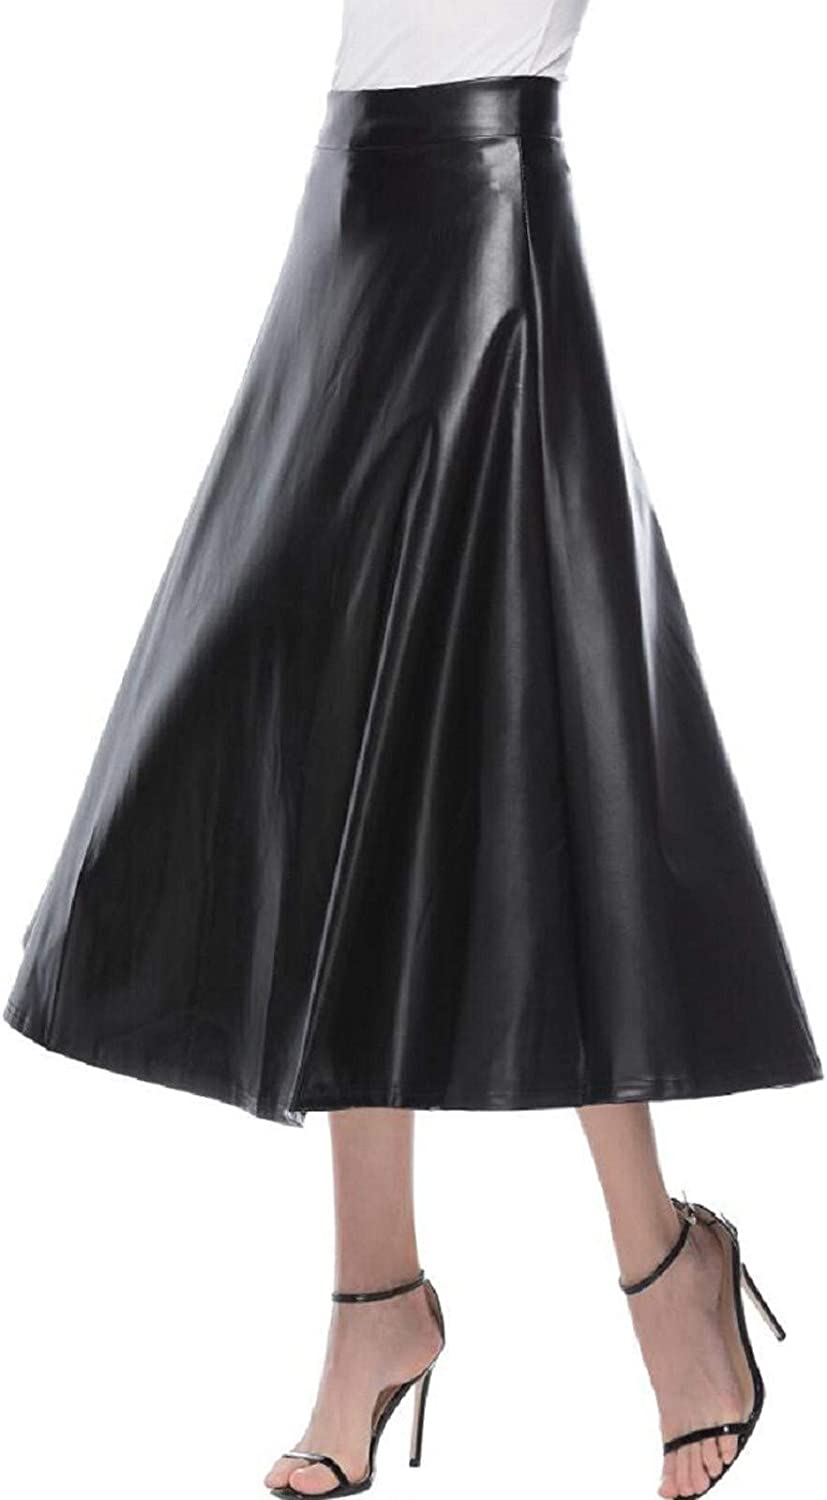 iCODOD Women Faux Leather Pleated Maxi Skirt A-Line Casual Loose Flared Midi Skirt Elegant Vintage Stretchy Casual OL